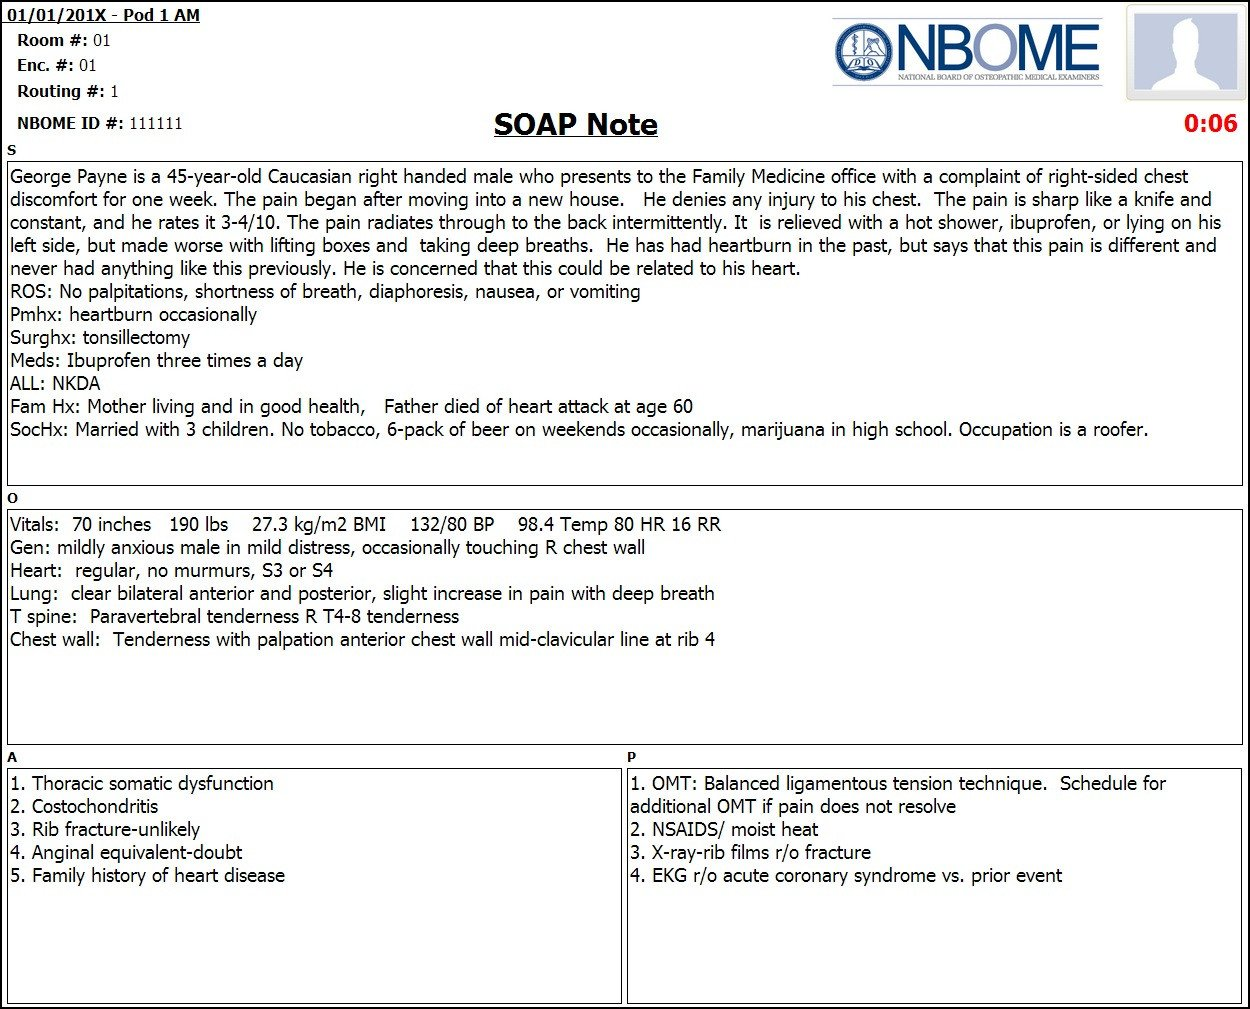 Internal Medicine soap Note Template Pleted Esoap Note Sample — Nbome